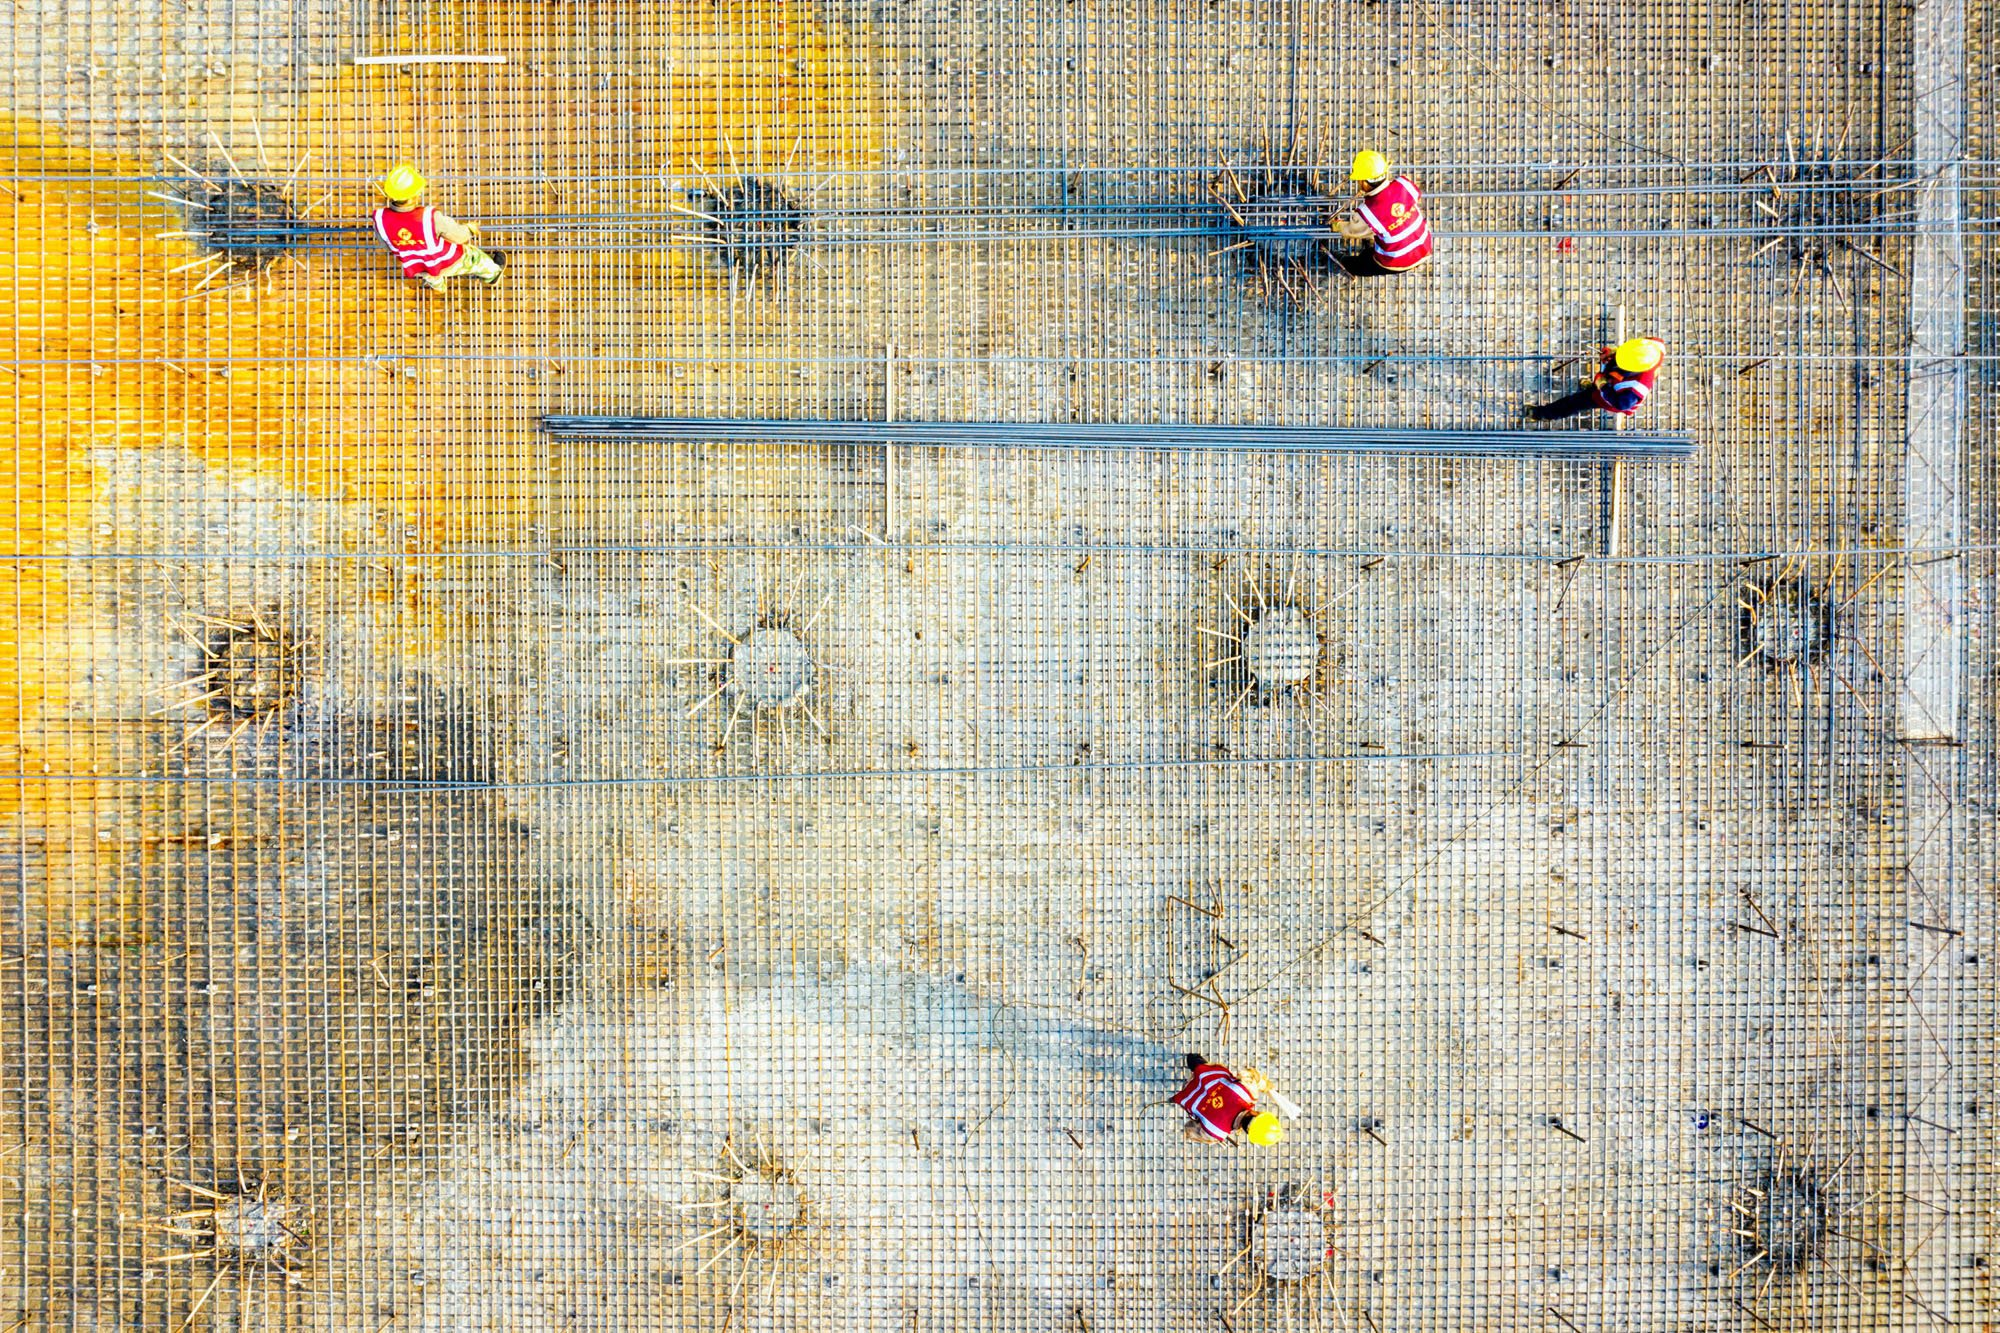 © Guanghui Gu, China Mainland, Finalist, Professional competition, Architecture and Design, Sony World Photography Awards 2021_03